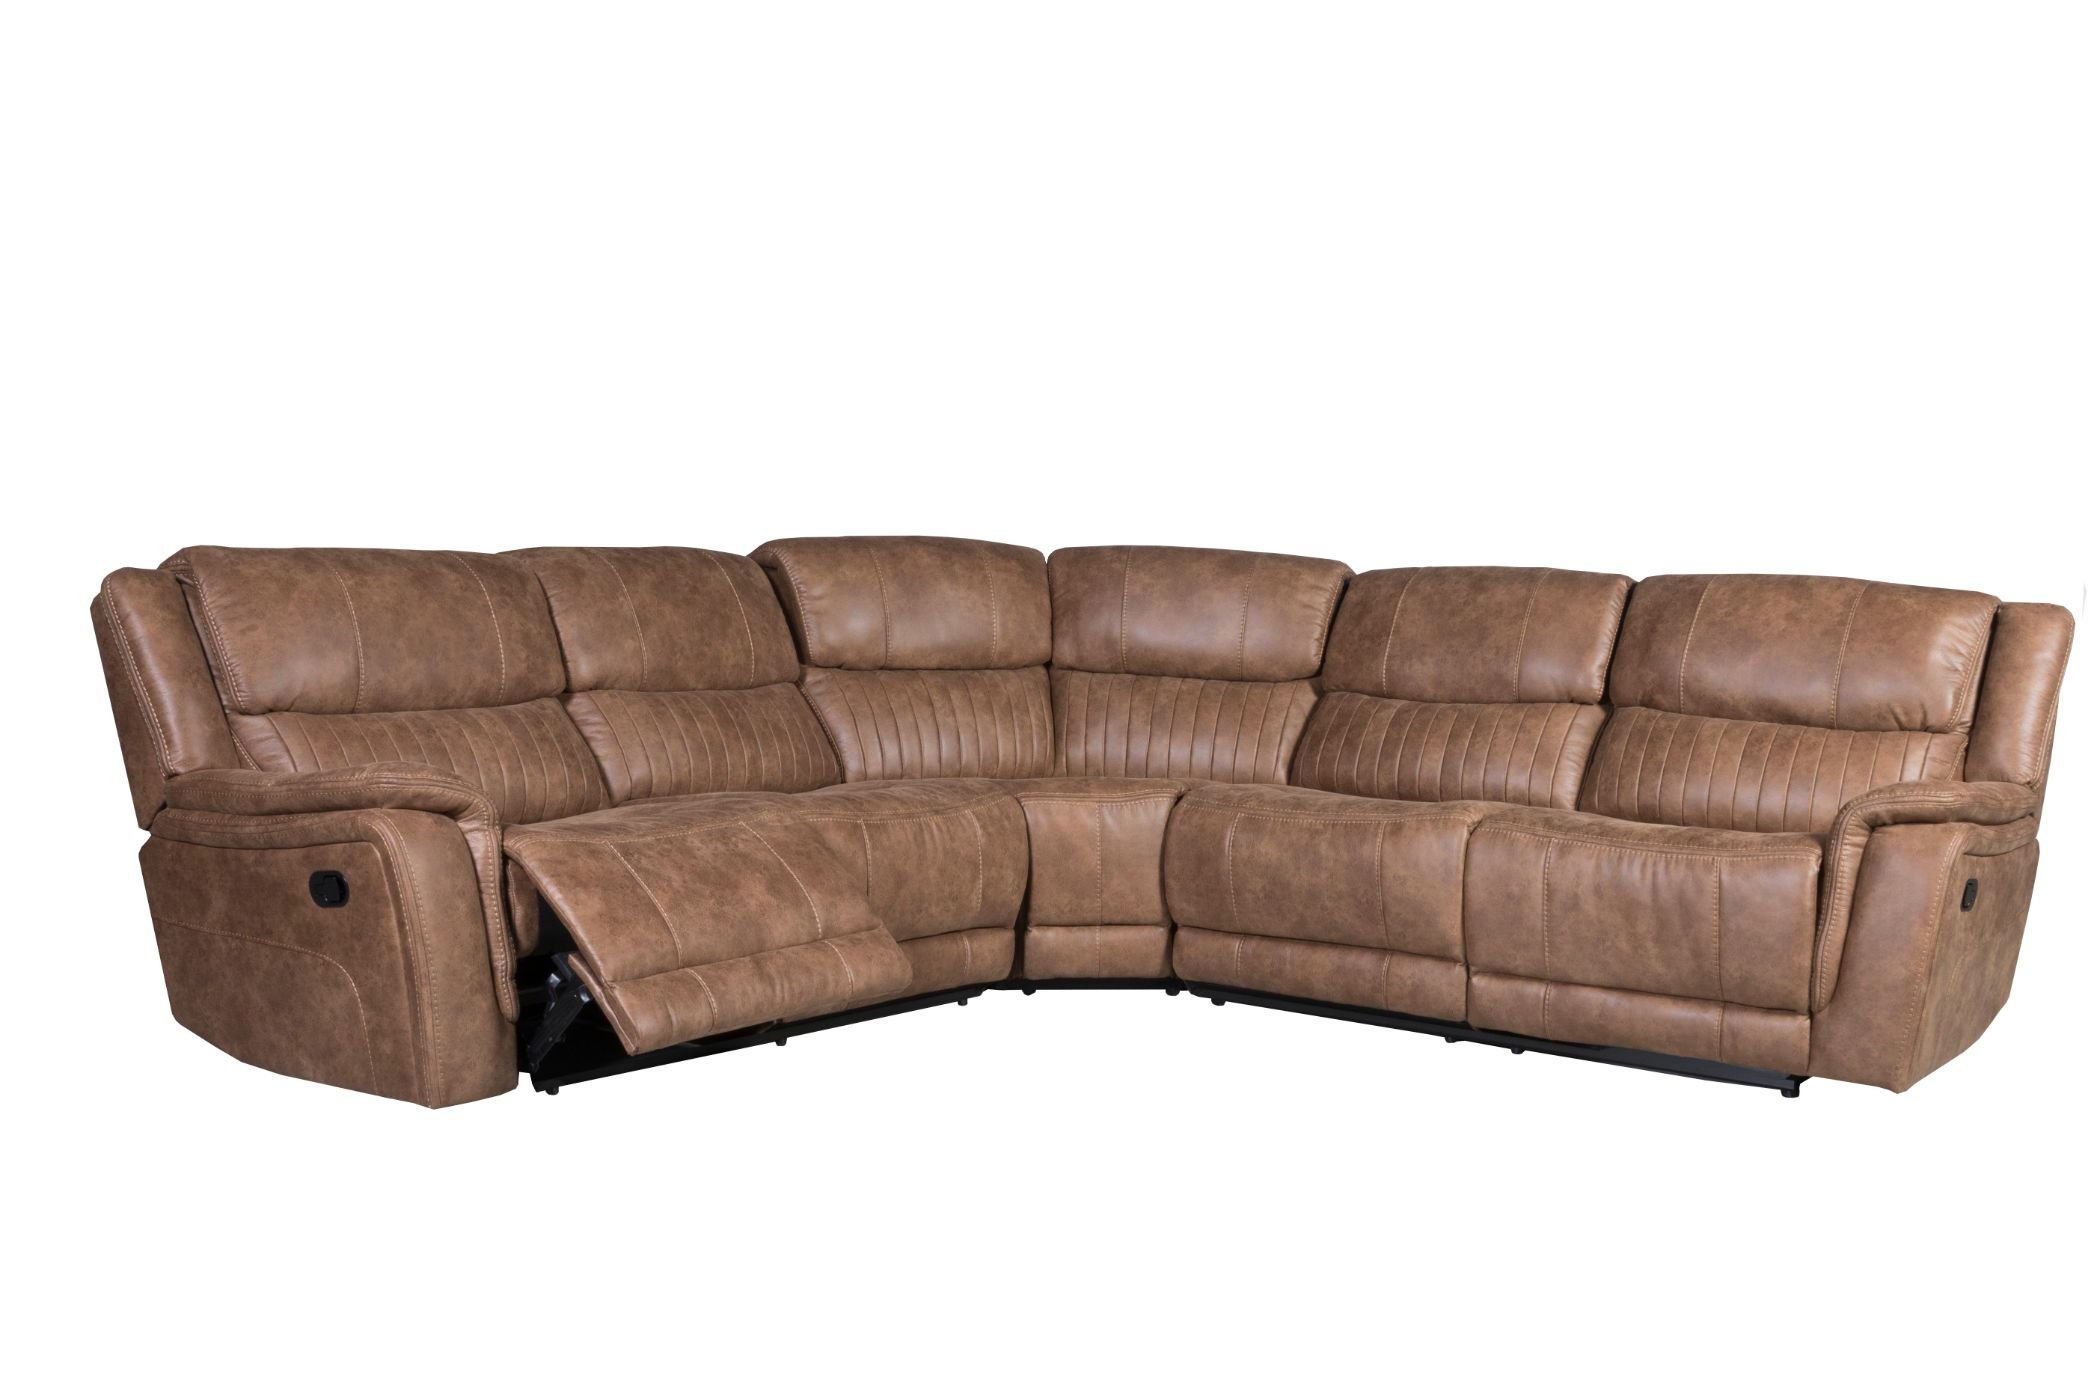 malyn brown faux leather reclining sectional sofa